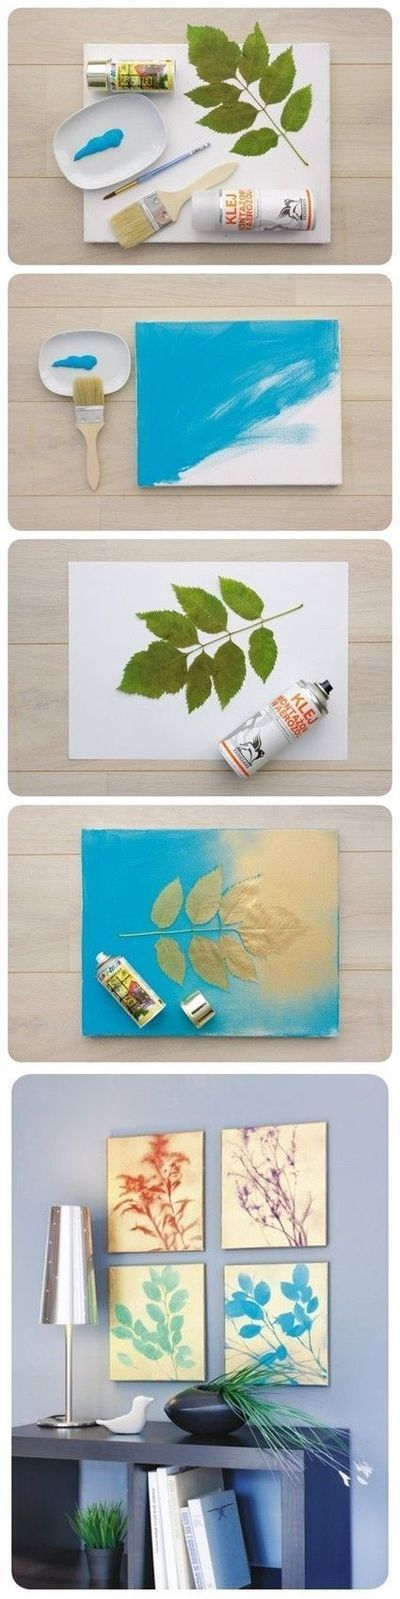 Cute idea with gold spray paint and leaves